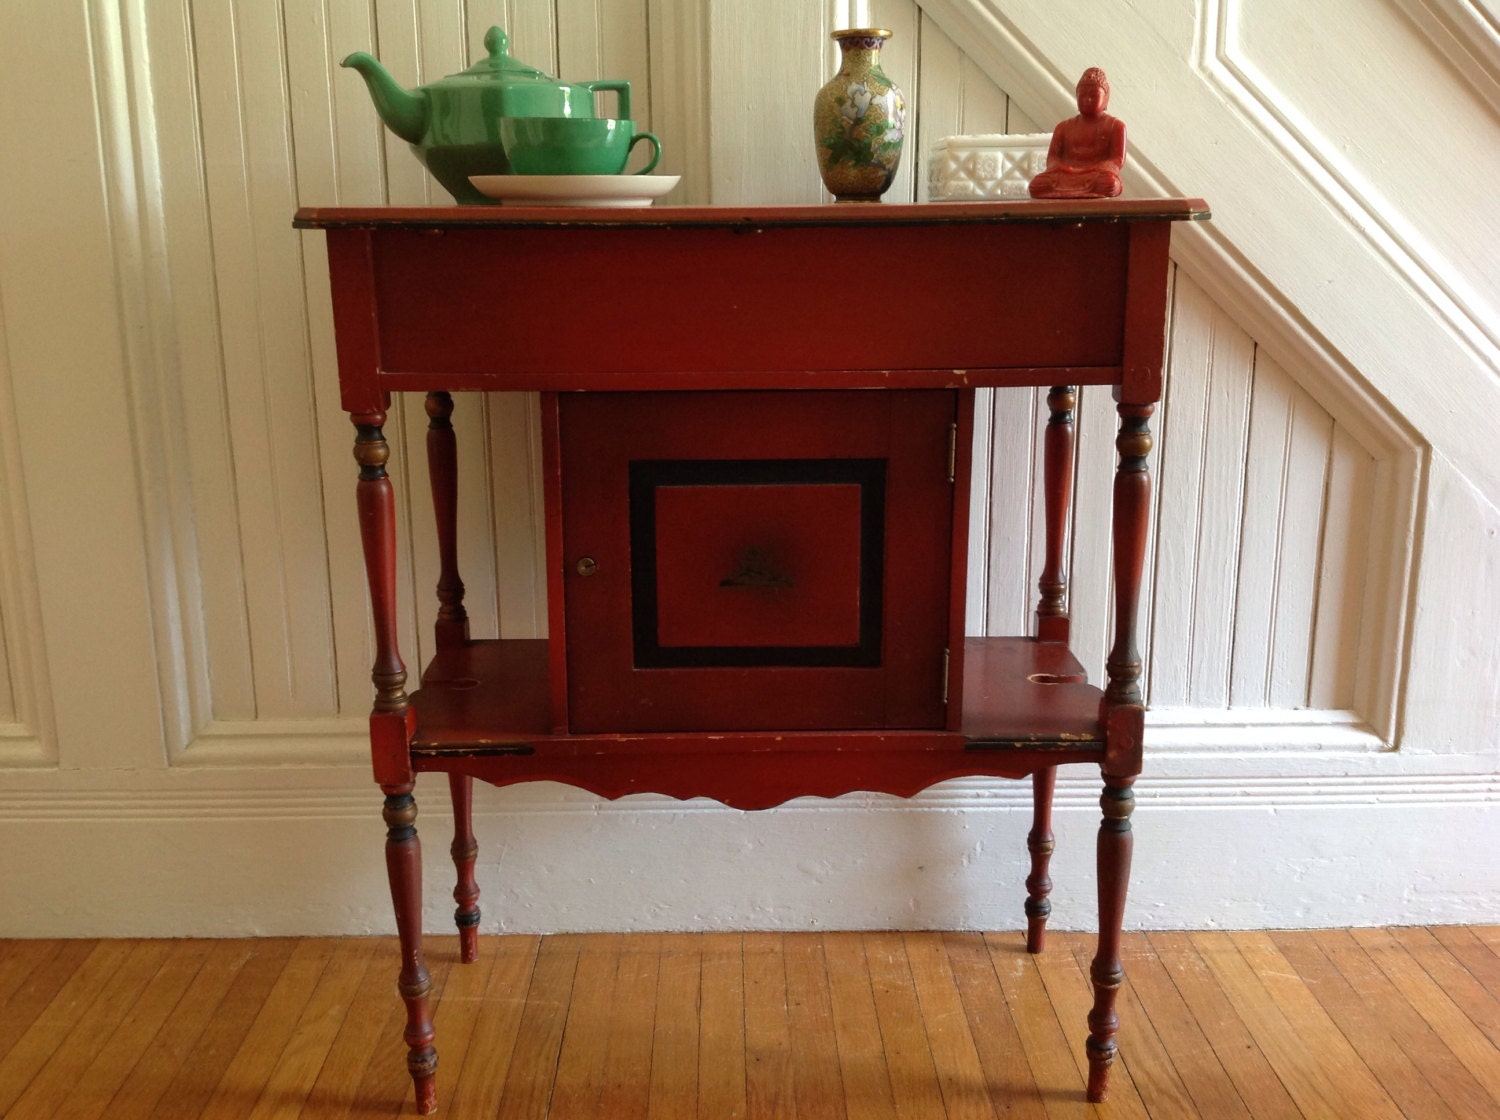 ANTIQUE HUMIDOR Cigar Storage Cabinet Table c1900 Original Chinese Red  Paint Finish Gold Black Asian Design Vintage Rustic Shabby Chippy - ANTIQUE HUMIDOR Cigar Storage Cabinet Table C1900 Original Chinese